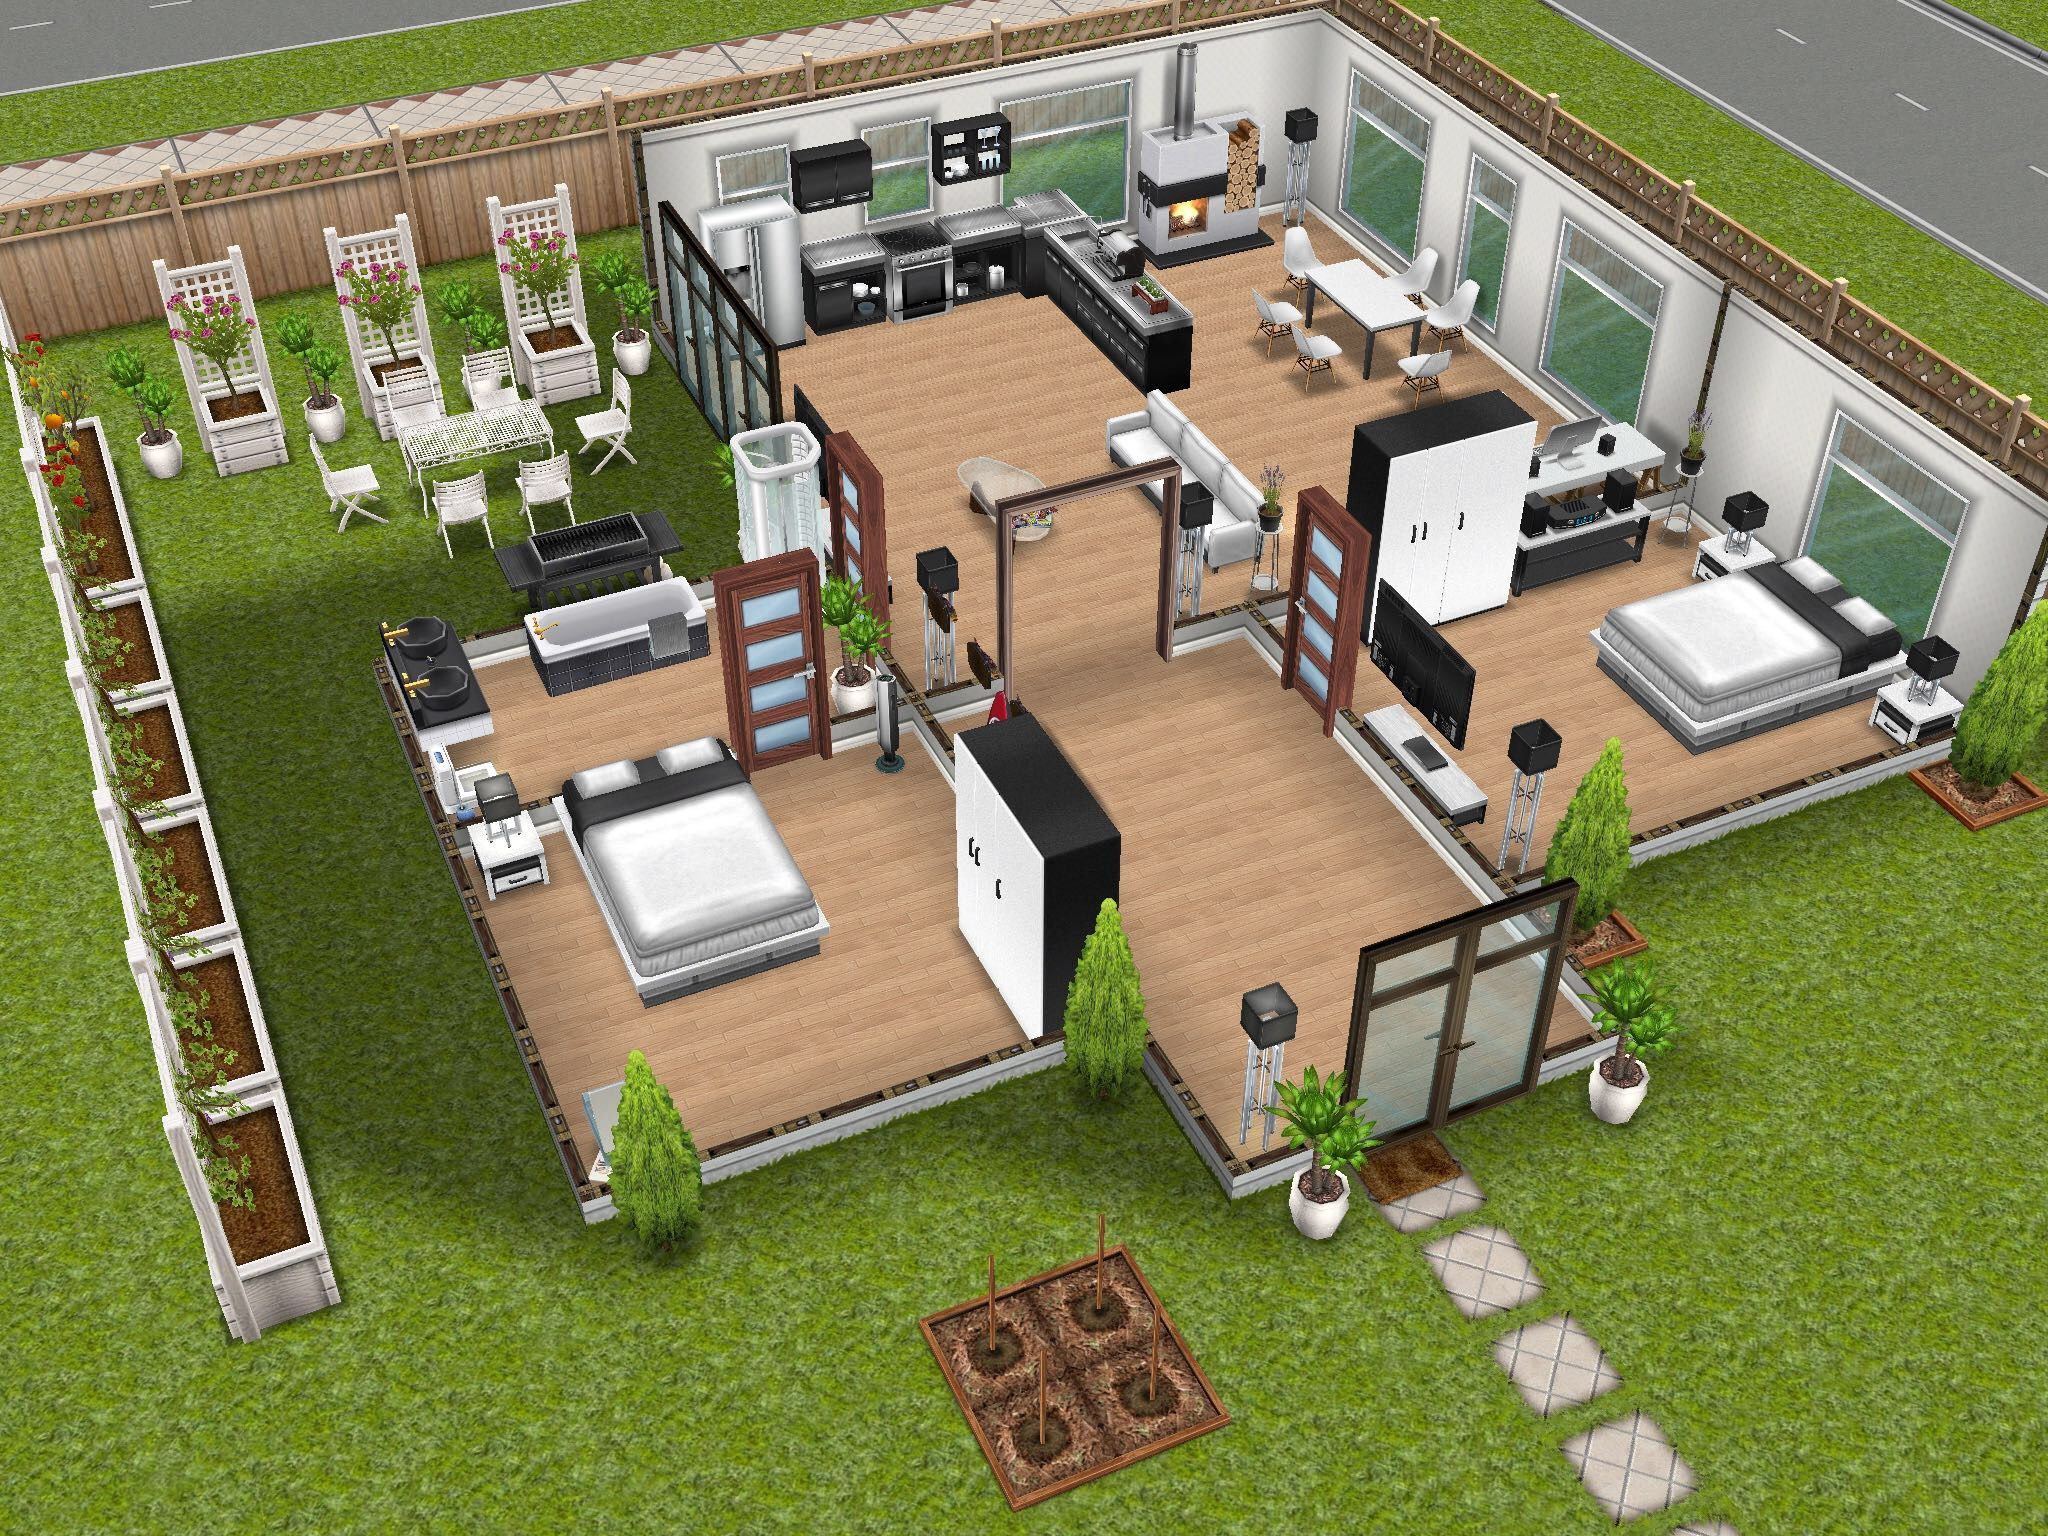 2 Bdrm Home Sims House Sims House Plans Sims Freeplay Houses